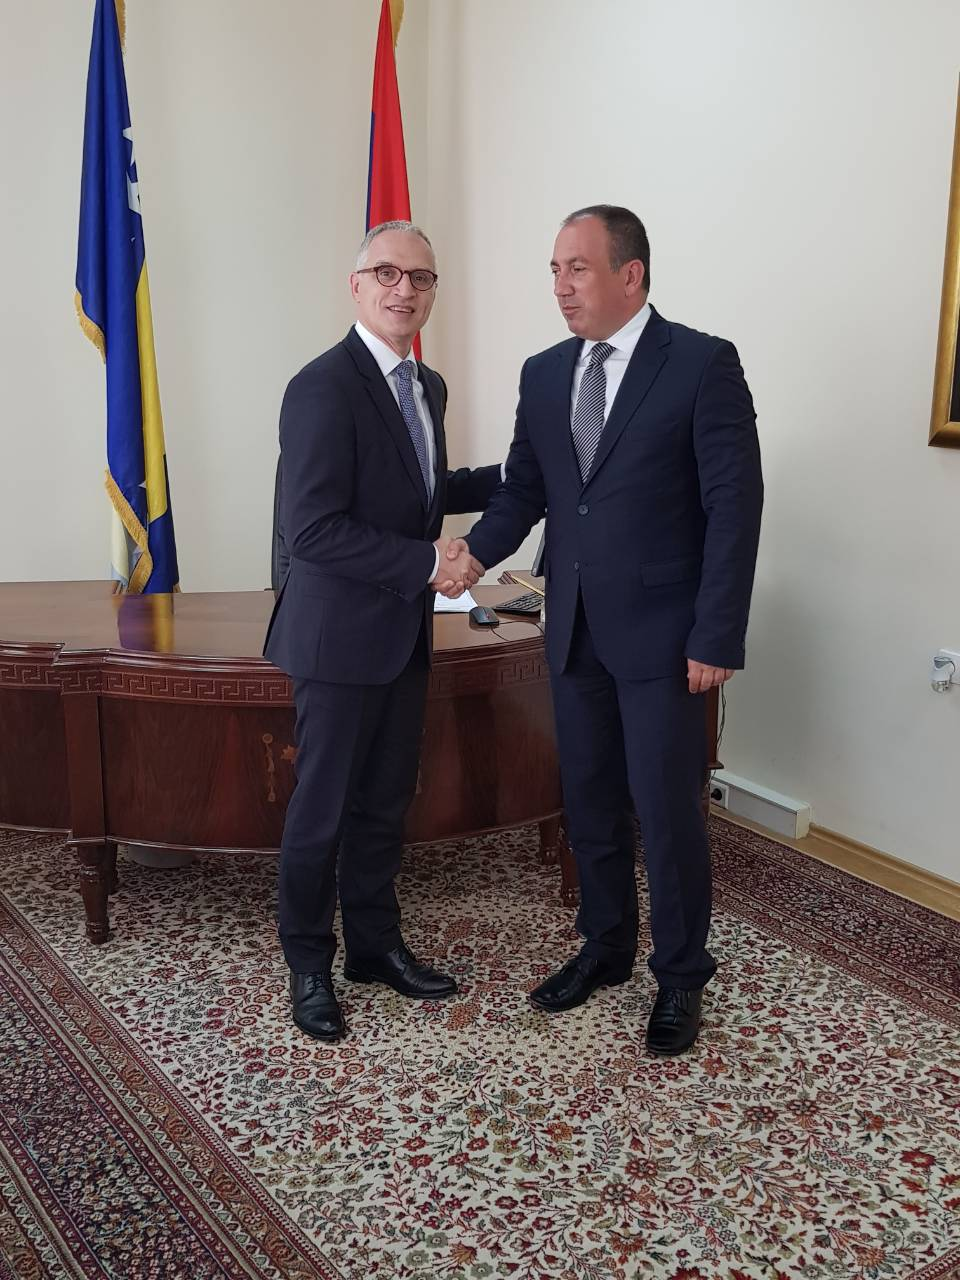 The Secretary General of the Regional Cooperation Council (RCC), Goran Svilanovic (left), met the Foreign Minister of Bosnia and Herzegovina, Igor Crnadak (right), in Banja Luka, Bosnia and Herzegovina on 12 June 2018 (Photo: RCC/Zoran Popov)